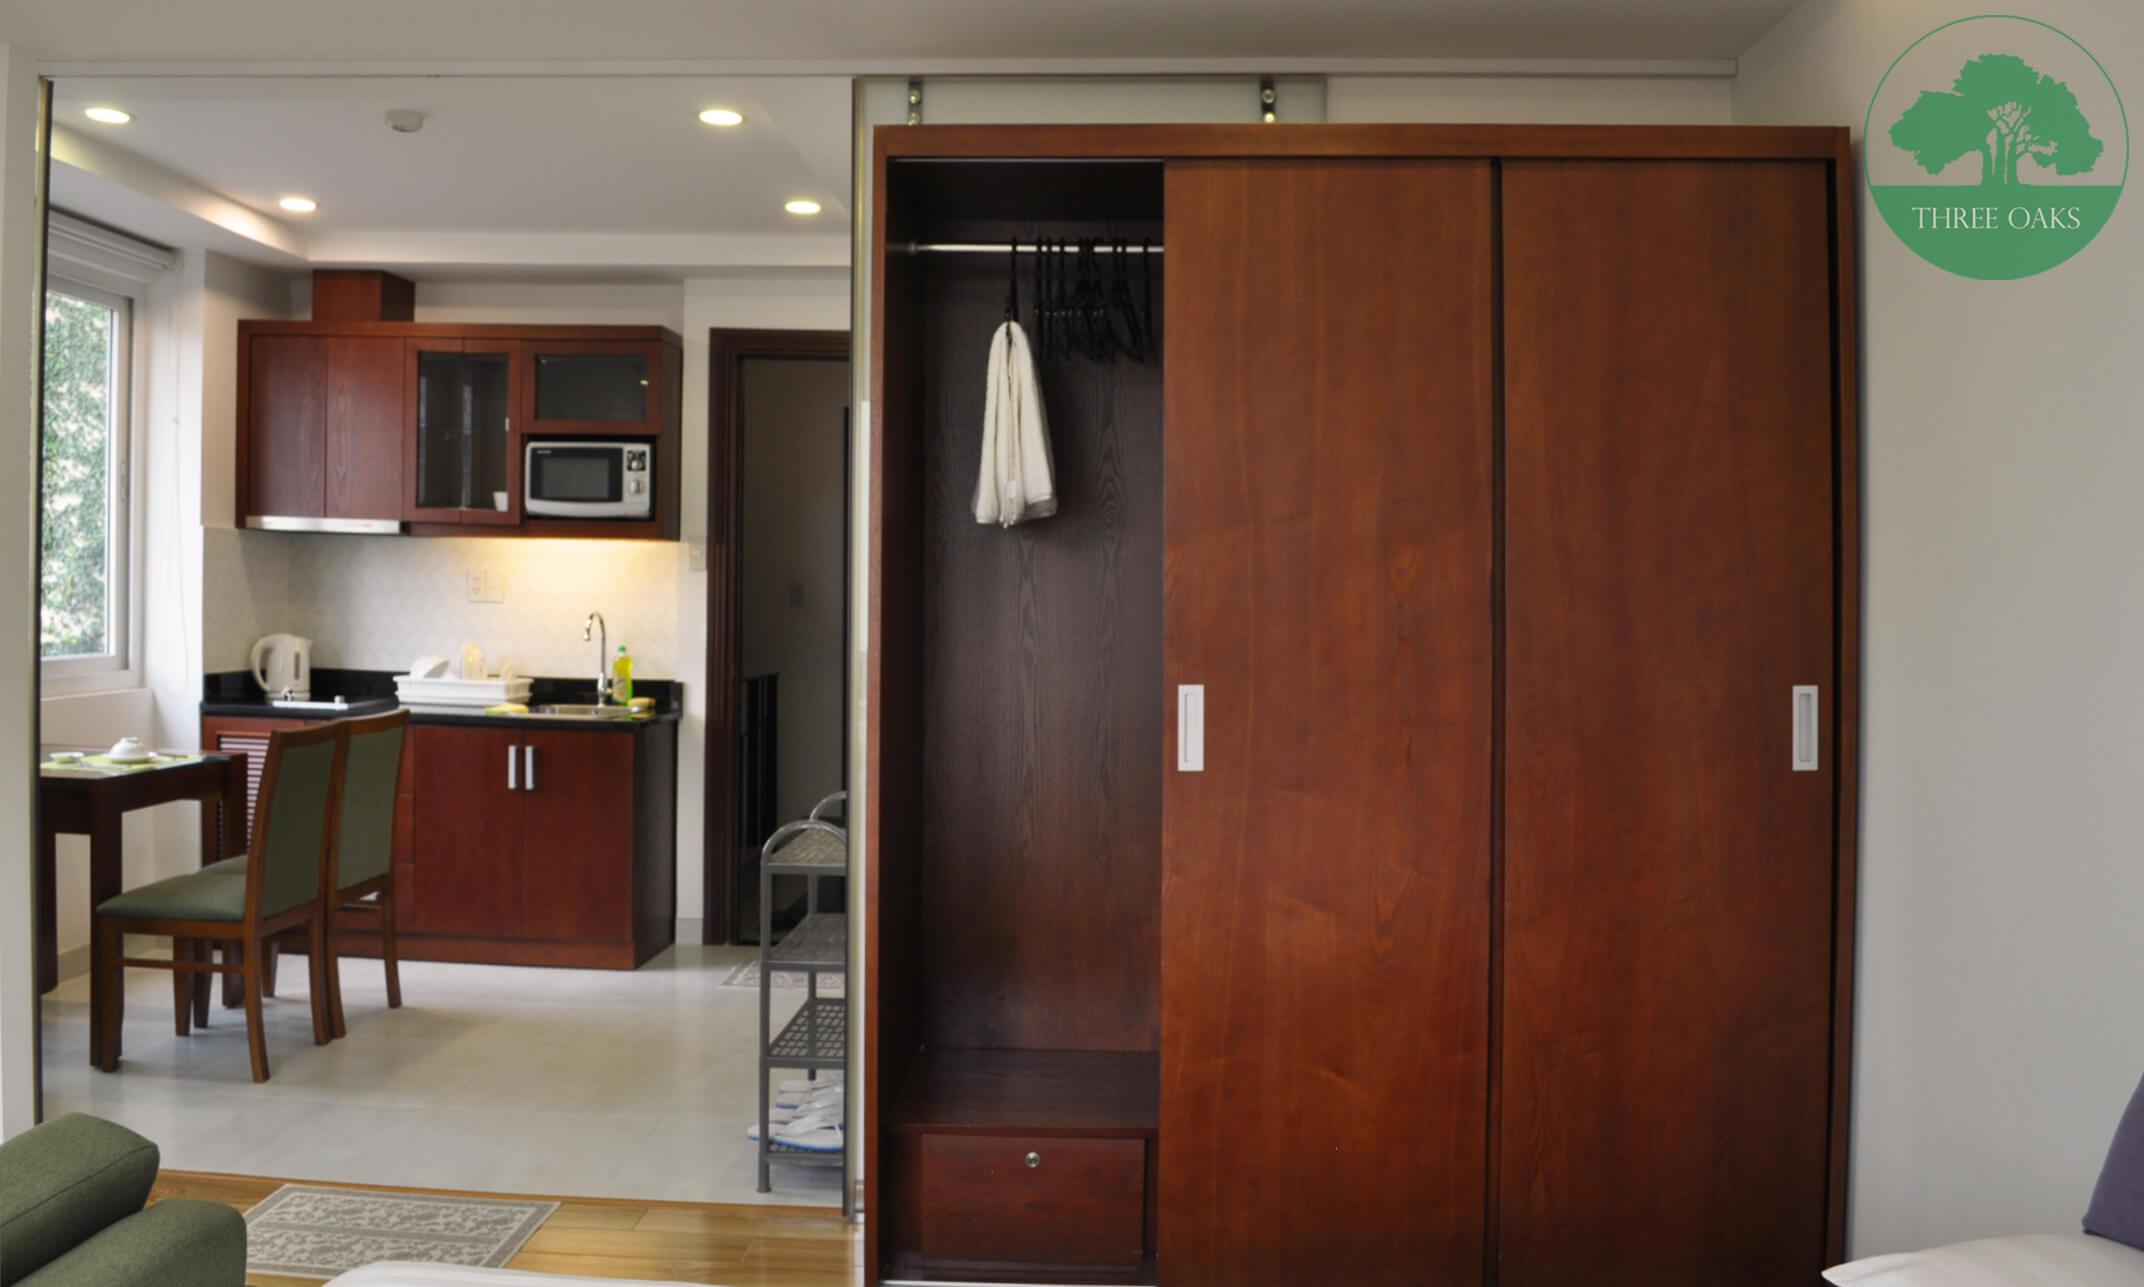 serviced-apartment-in-hcm-three-oaks-2-tybe-a-42